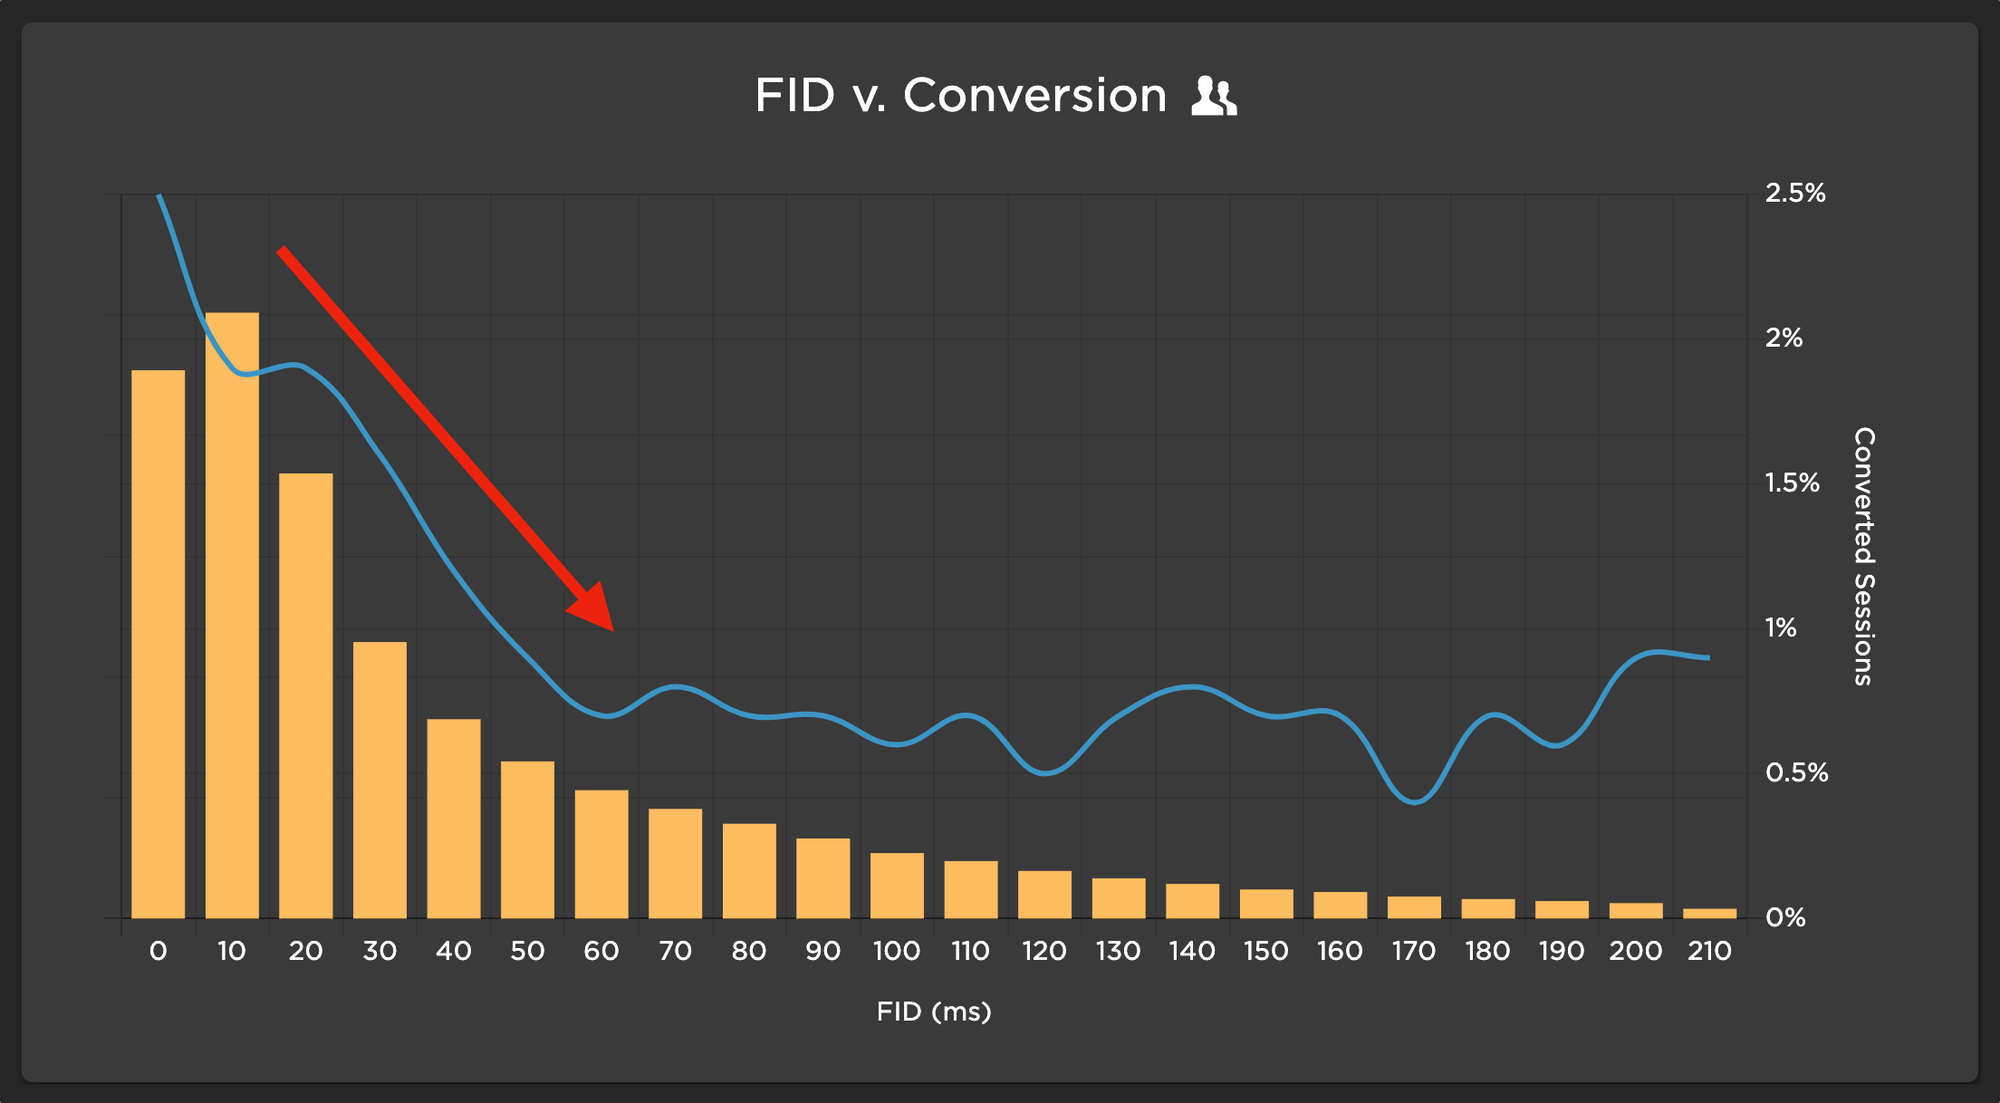 Chart showing some correlation between FID and Conversion